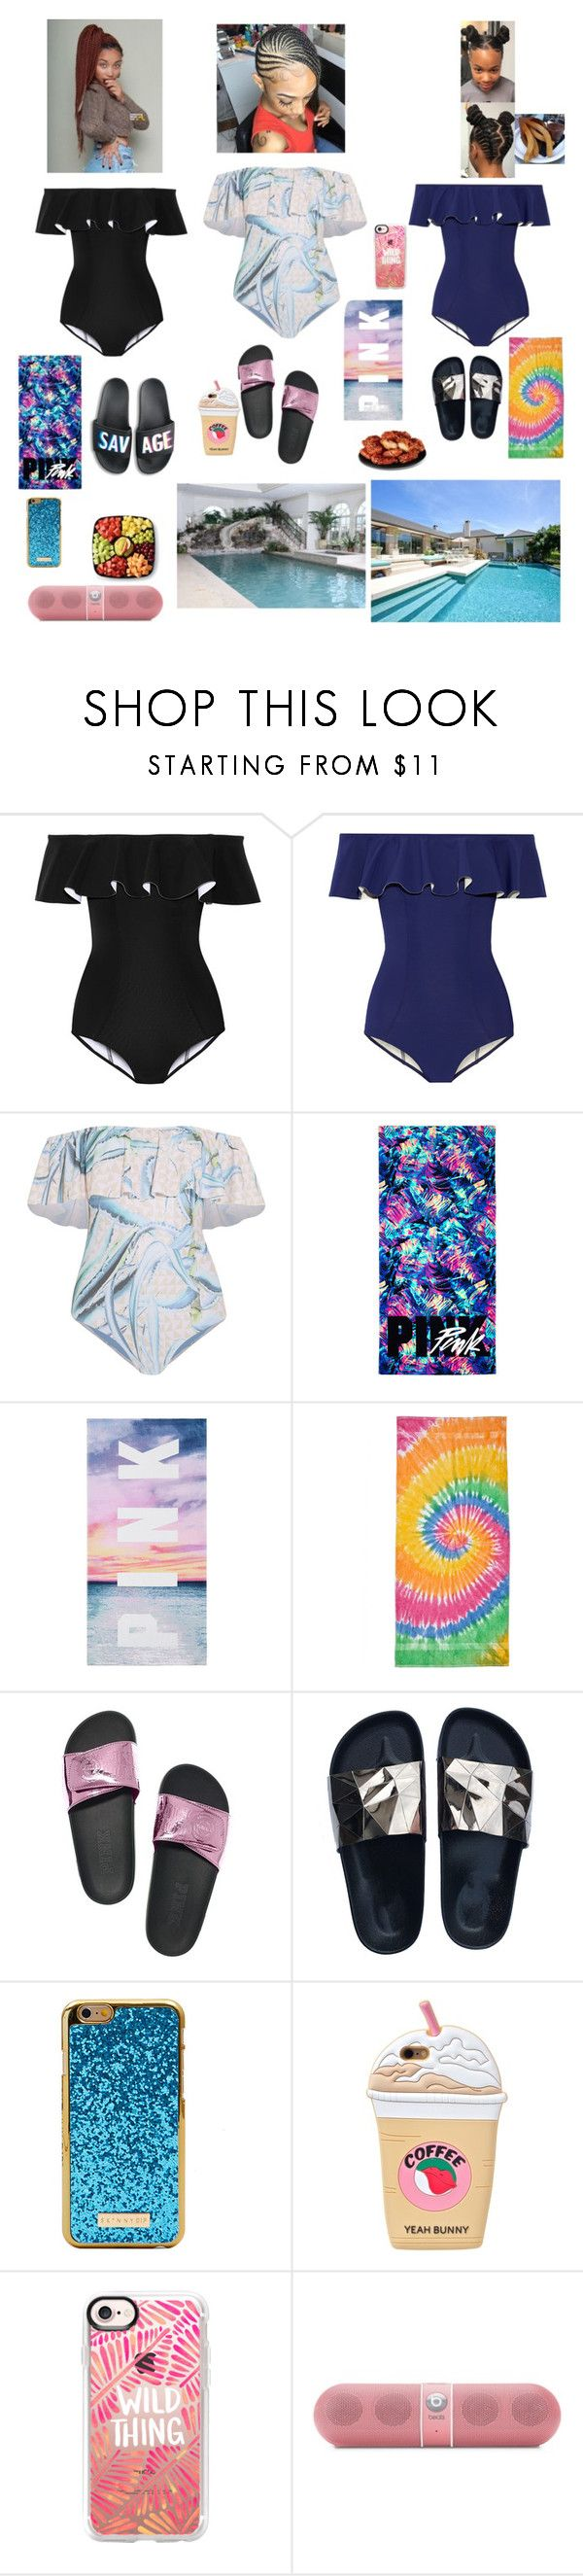 """Splash party 💦🌊{JANIAH,MAKAYLA,PARIS}"" by aleciadowdemll ❤ liked on Polyvore featuring beauty, Lisa Marie Fernandez, Mara Hoffman, Colortone, Victoria's Secret, KEEP ME, Yeah Bunny, Casetify and Beats by Dr. Dre"